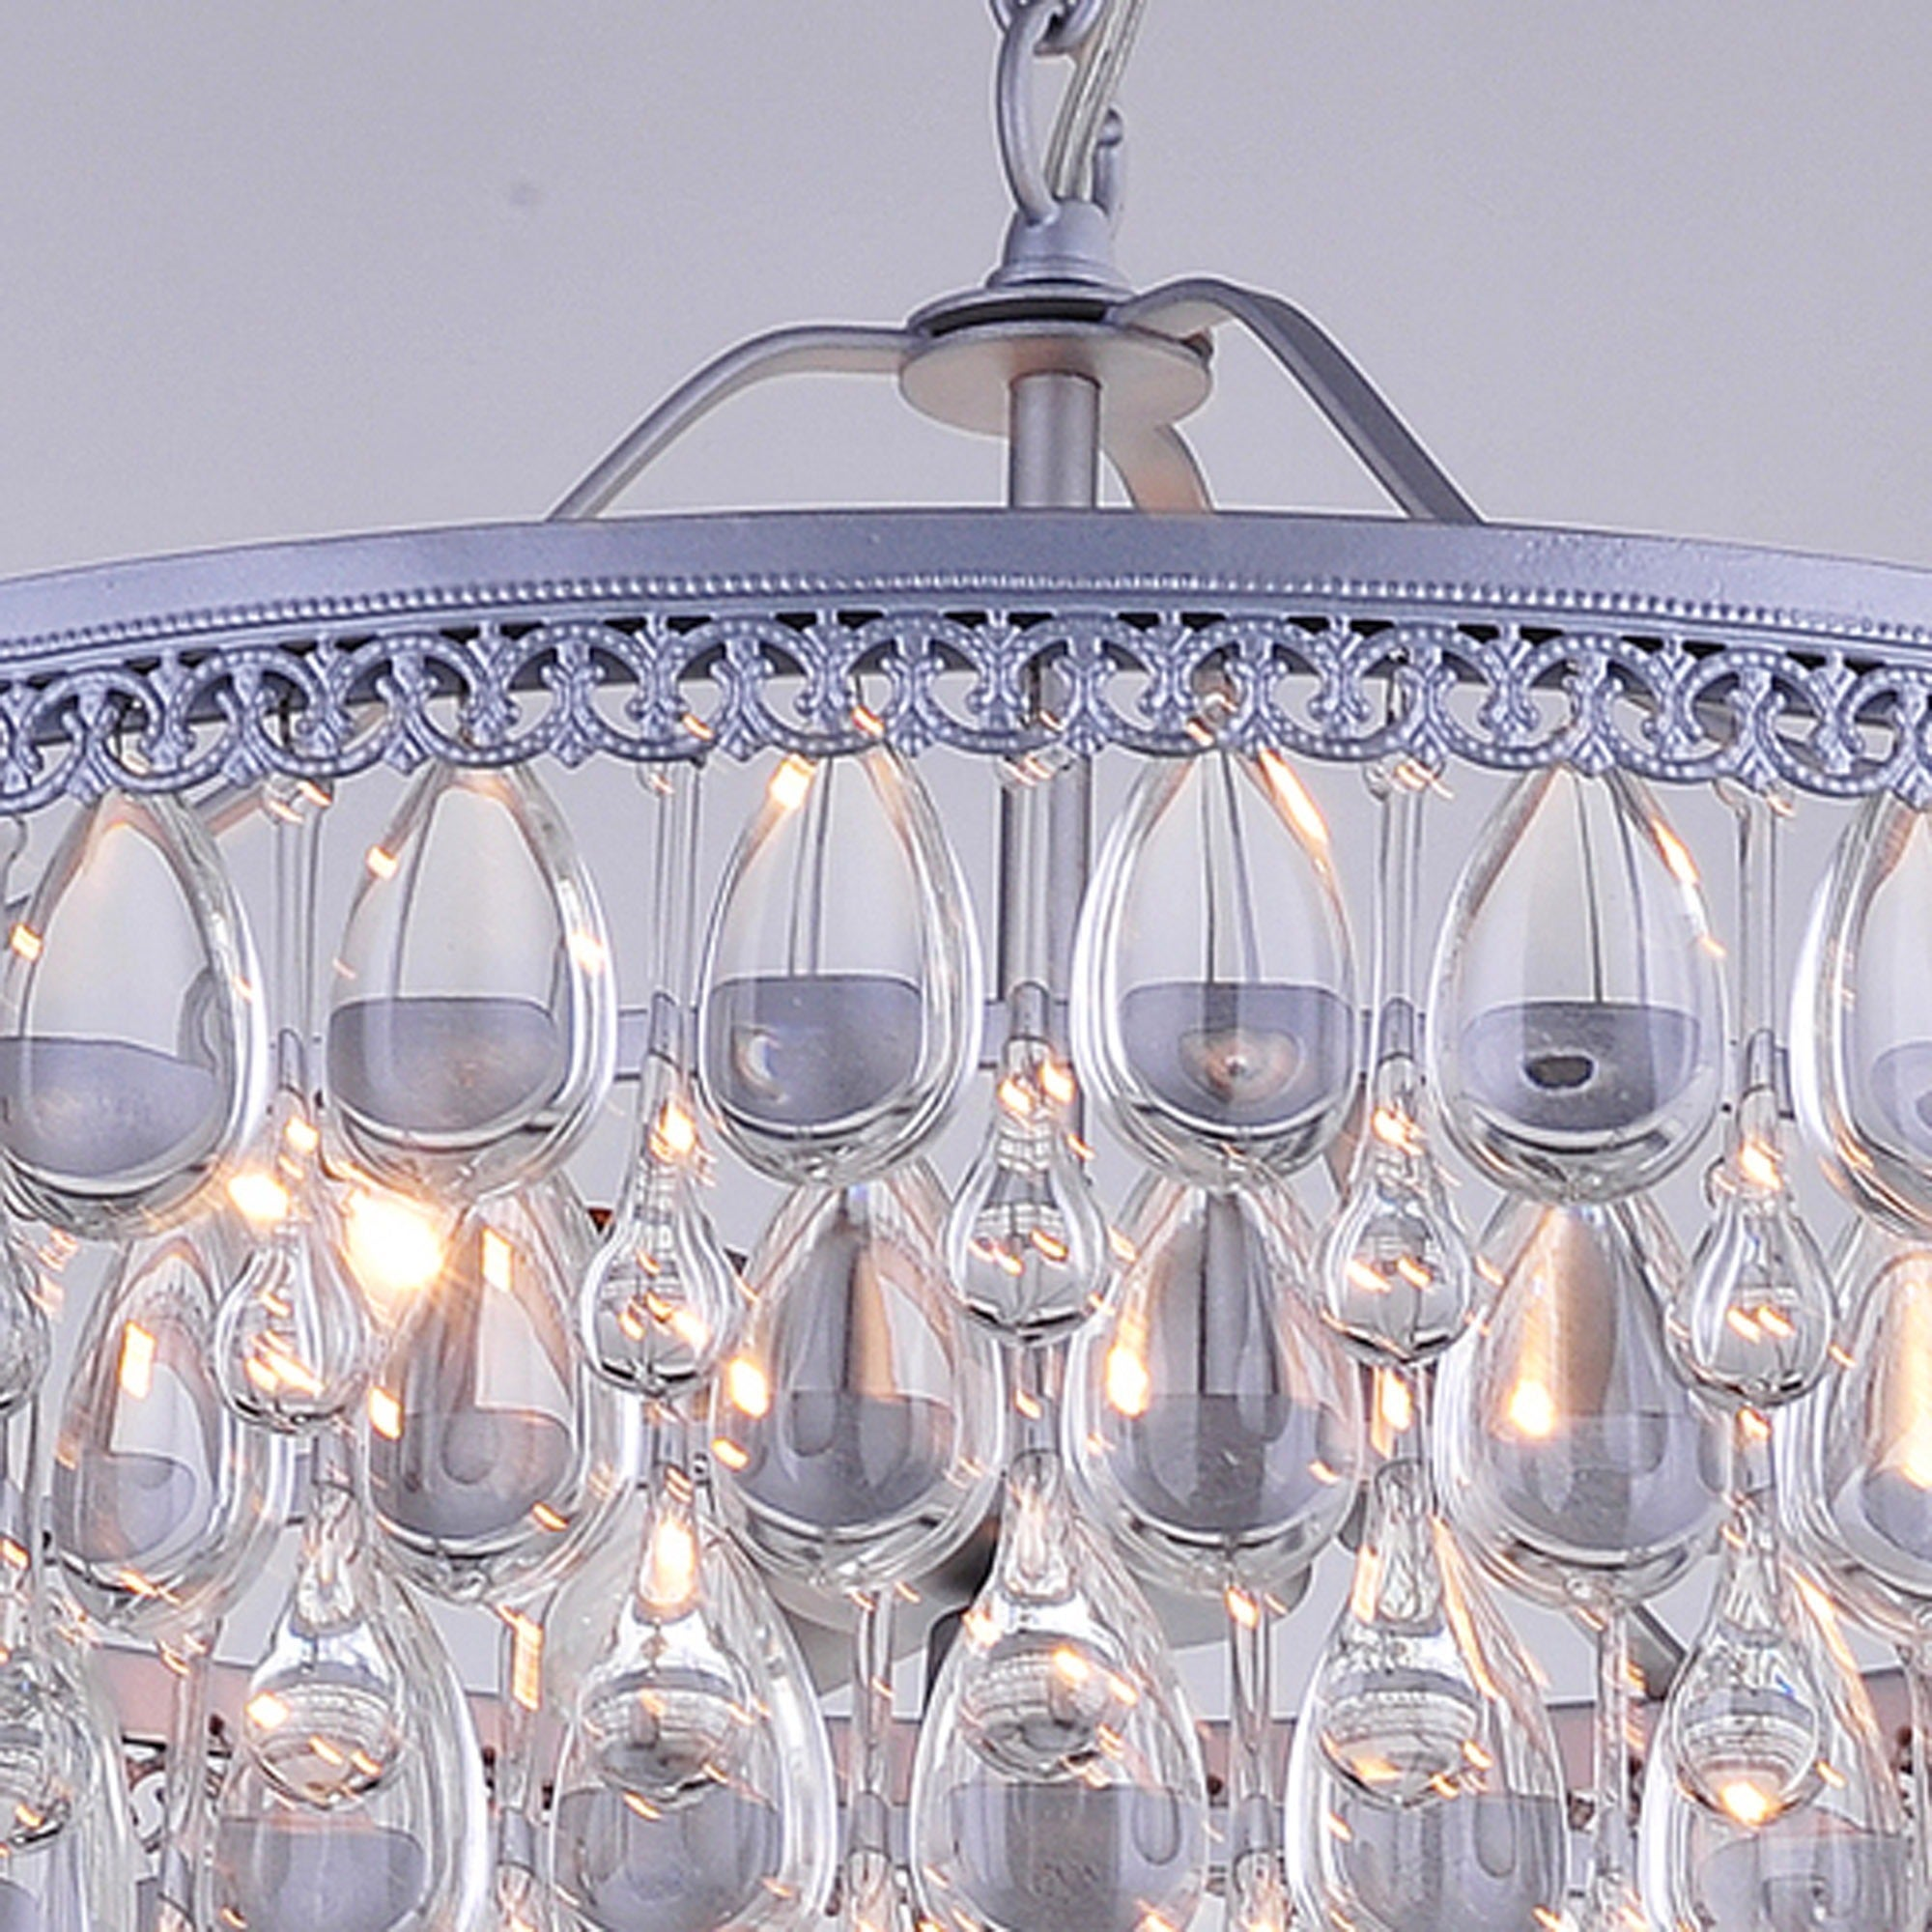 Shop Silver Orchid Crystal 6 Light Chandelier With Clear Teardrop How To Install A Stylish Beads On Sale Free Shipping Today 20253956